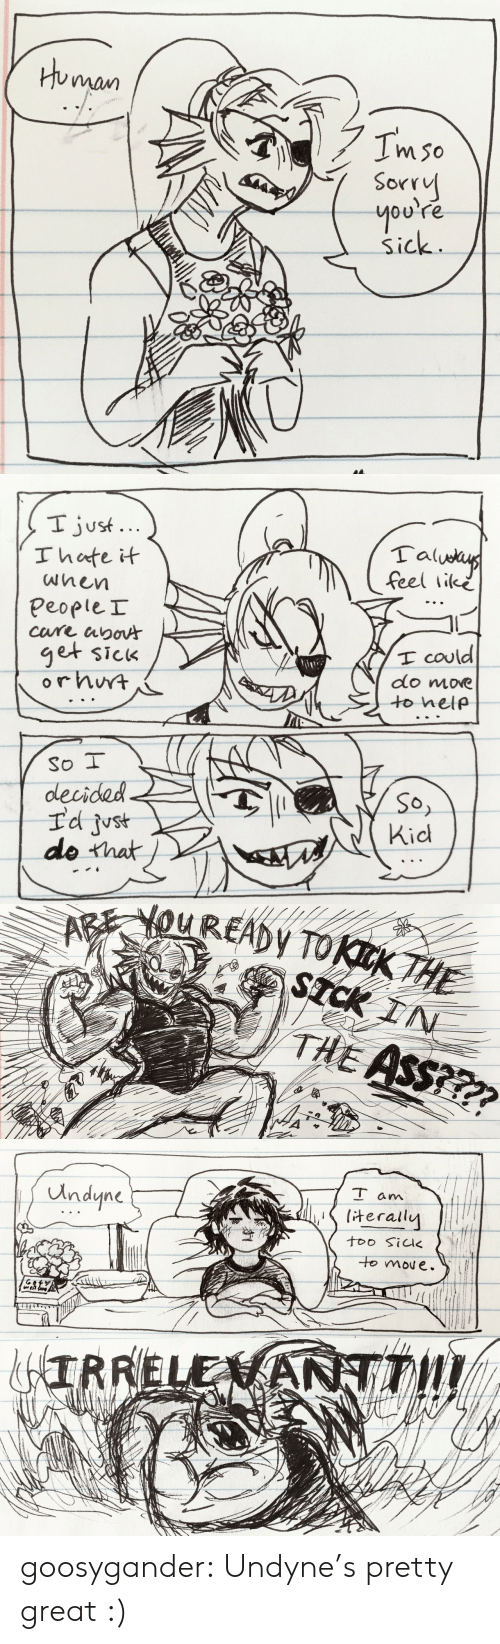 Ass, Sorry, and Tumblr: Human  Imso  Sorry  you're  Sick   I just...  Ihate it  Talueus  feel like  wnen  PeopleI  cure apoA  get sick  orhwt  I could  do move  to help  So I  decided  Id just  do that  So,  Kid   AREYOUREADY TOKKTHE  STCK IN  THE ASS???   T am  Undyne  terally  too Sik  to moue.   &IRRELENANTT! goosygander:  Undyne's pretty great :)